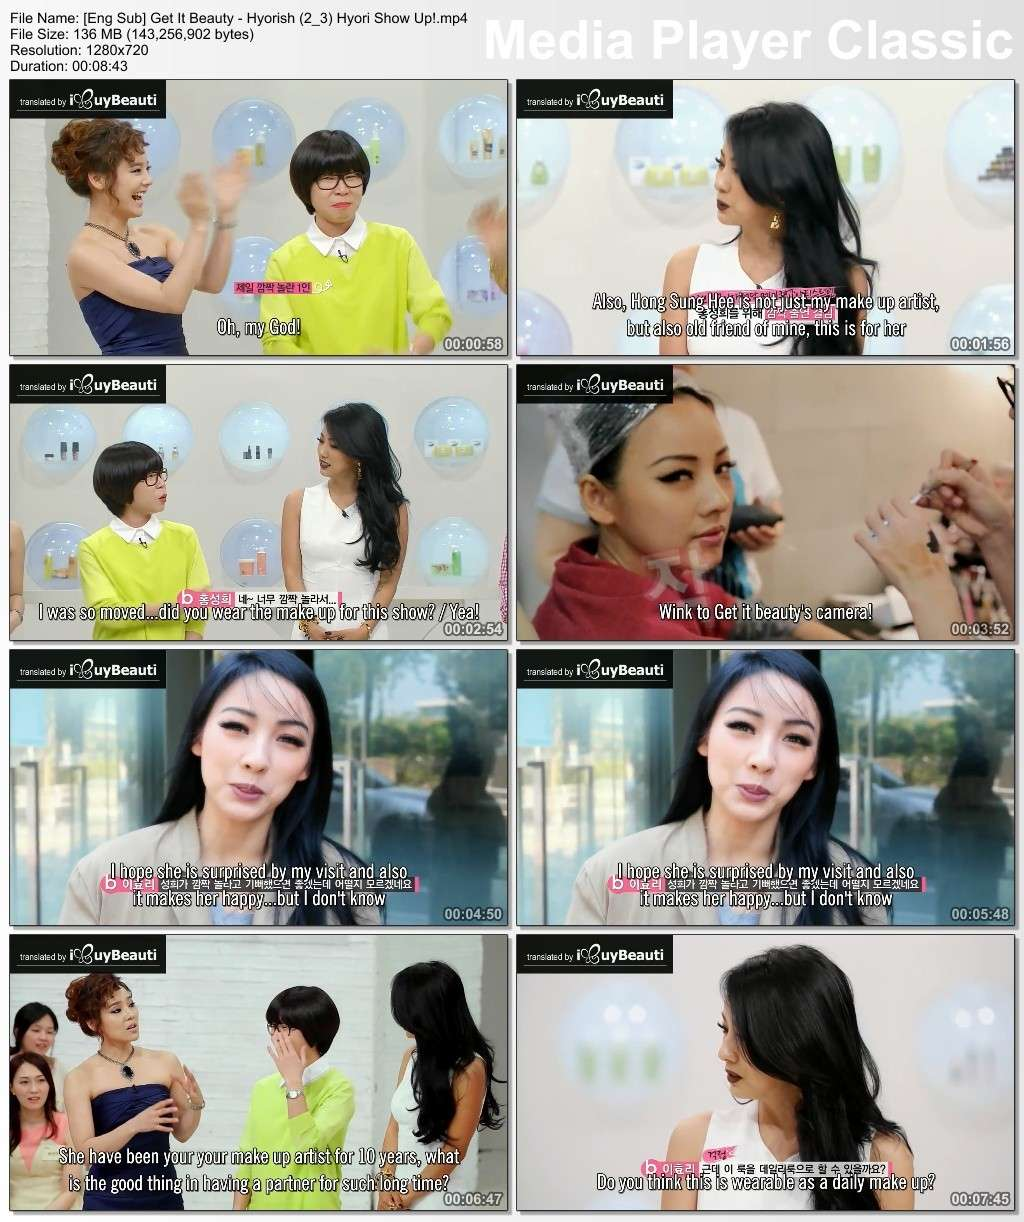 [Engsub][130529] Get It Beauty Ep.14 Eng_su10